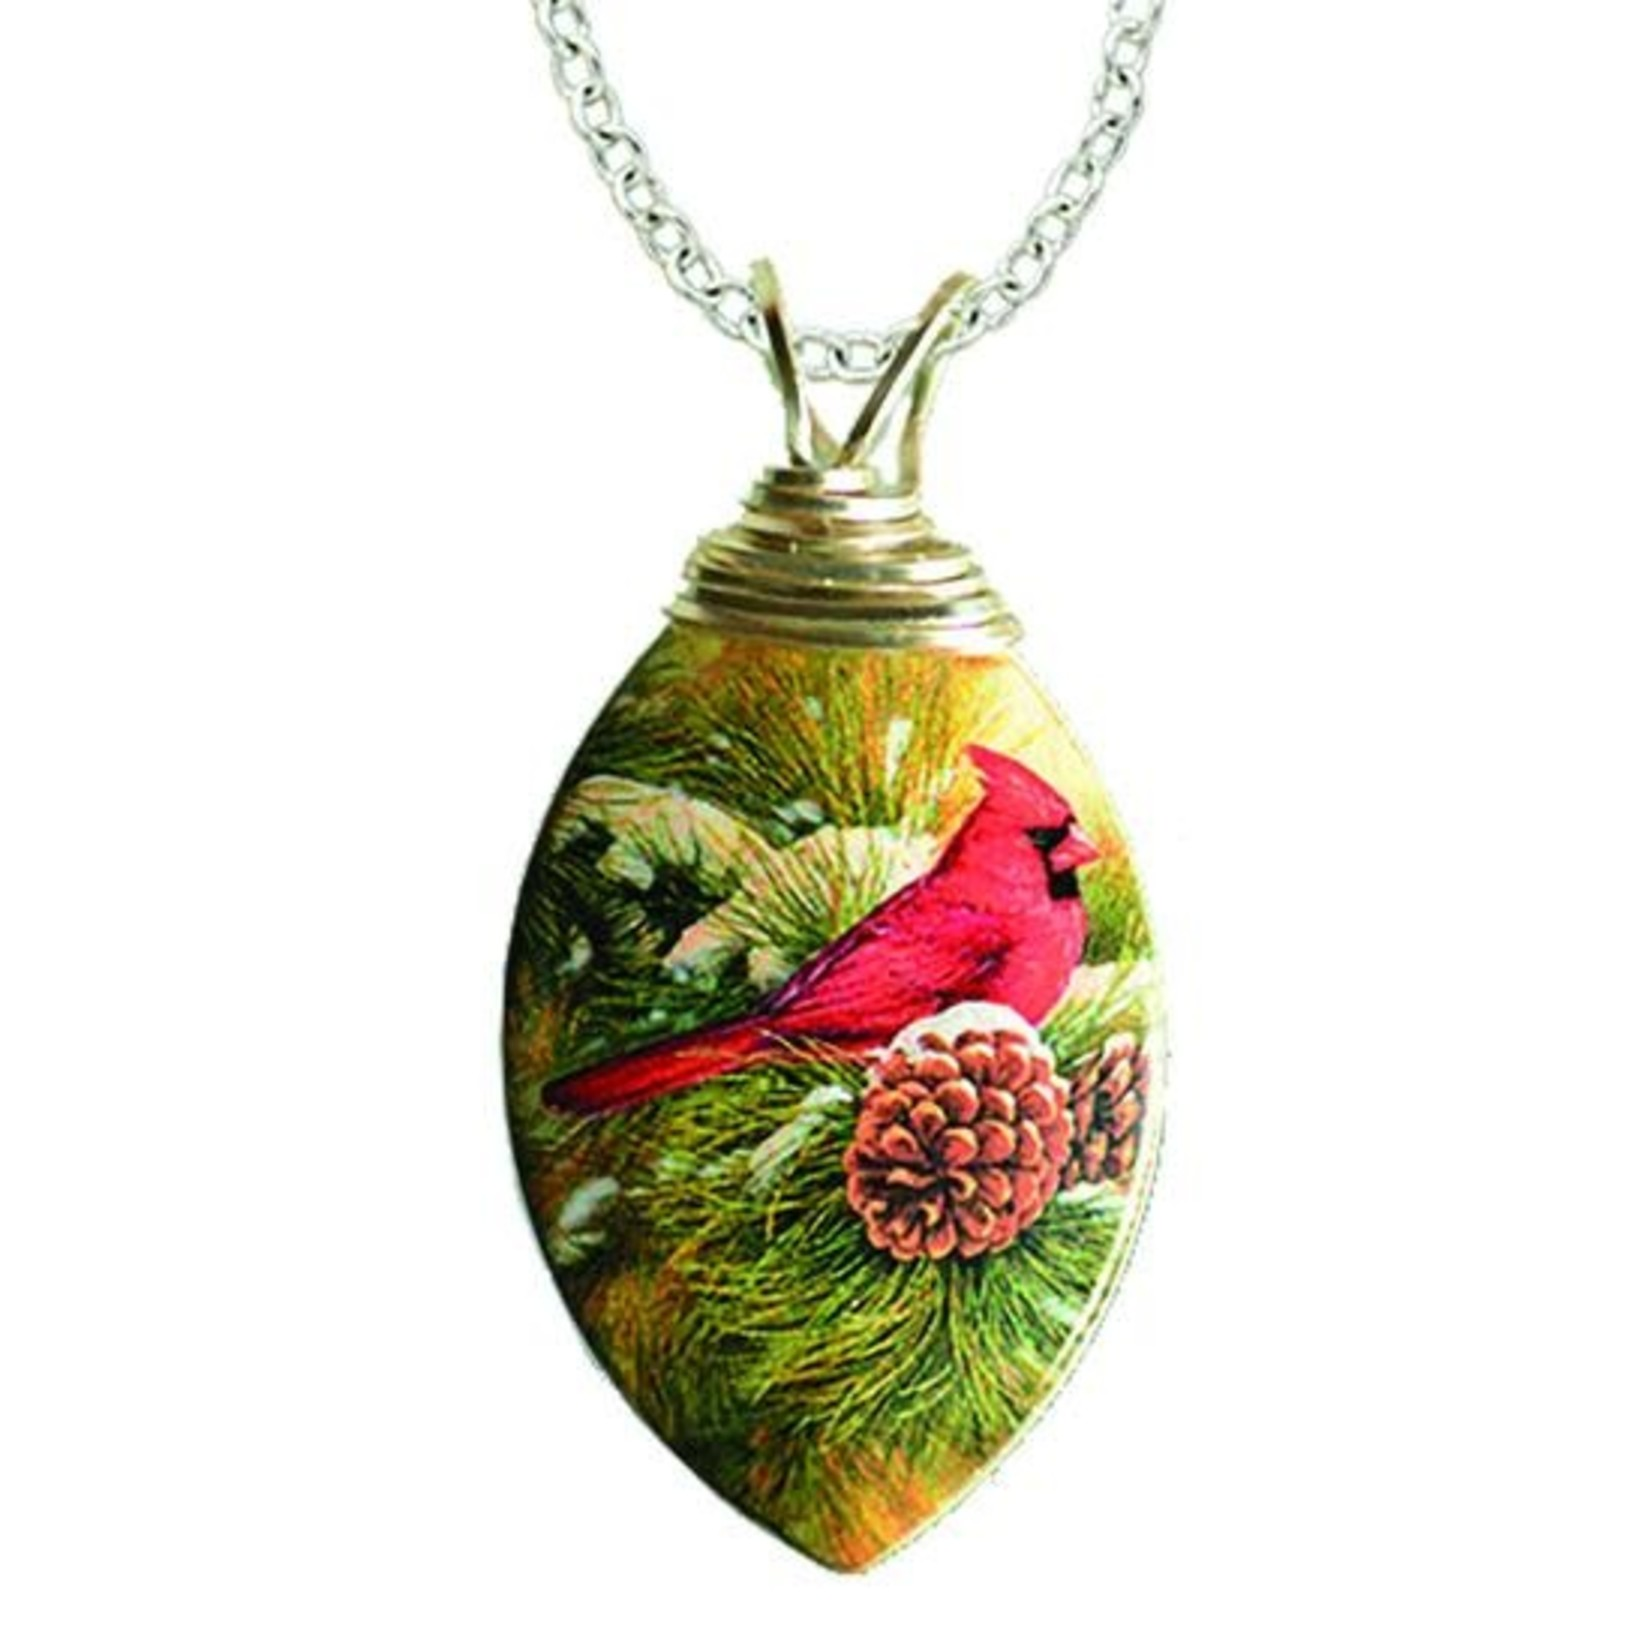 d'ears 4302X December Dawn, Rosemary Millette Necklace